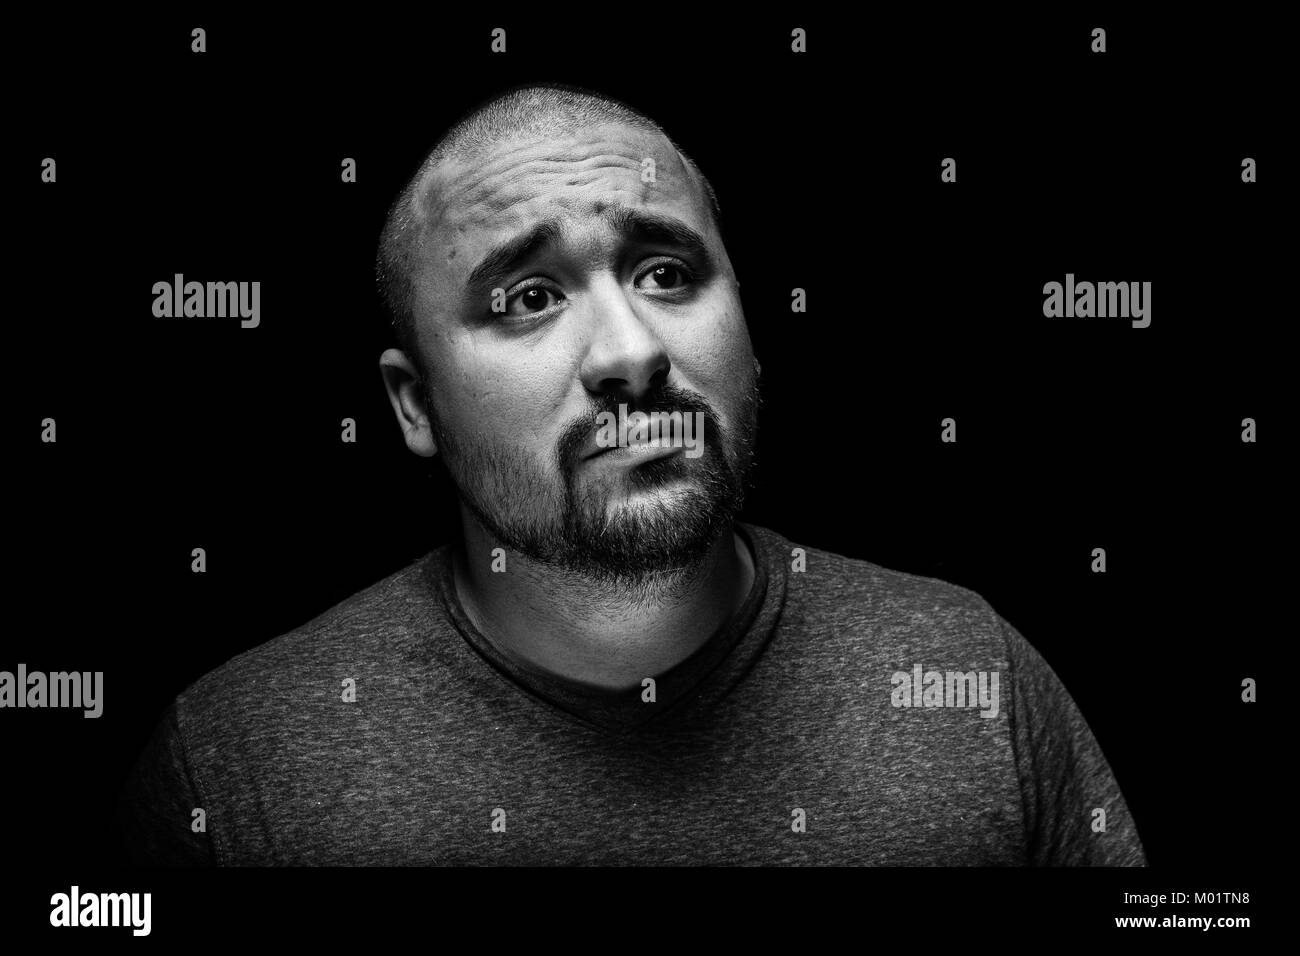 A high contrast black and white emotional and sad portrait of a hispanic man. - Stock Image